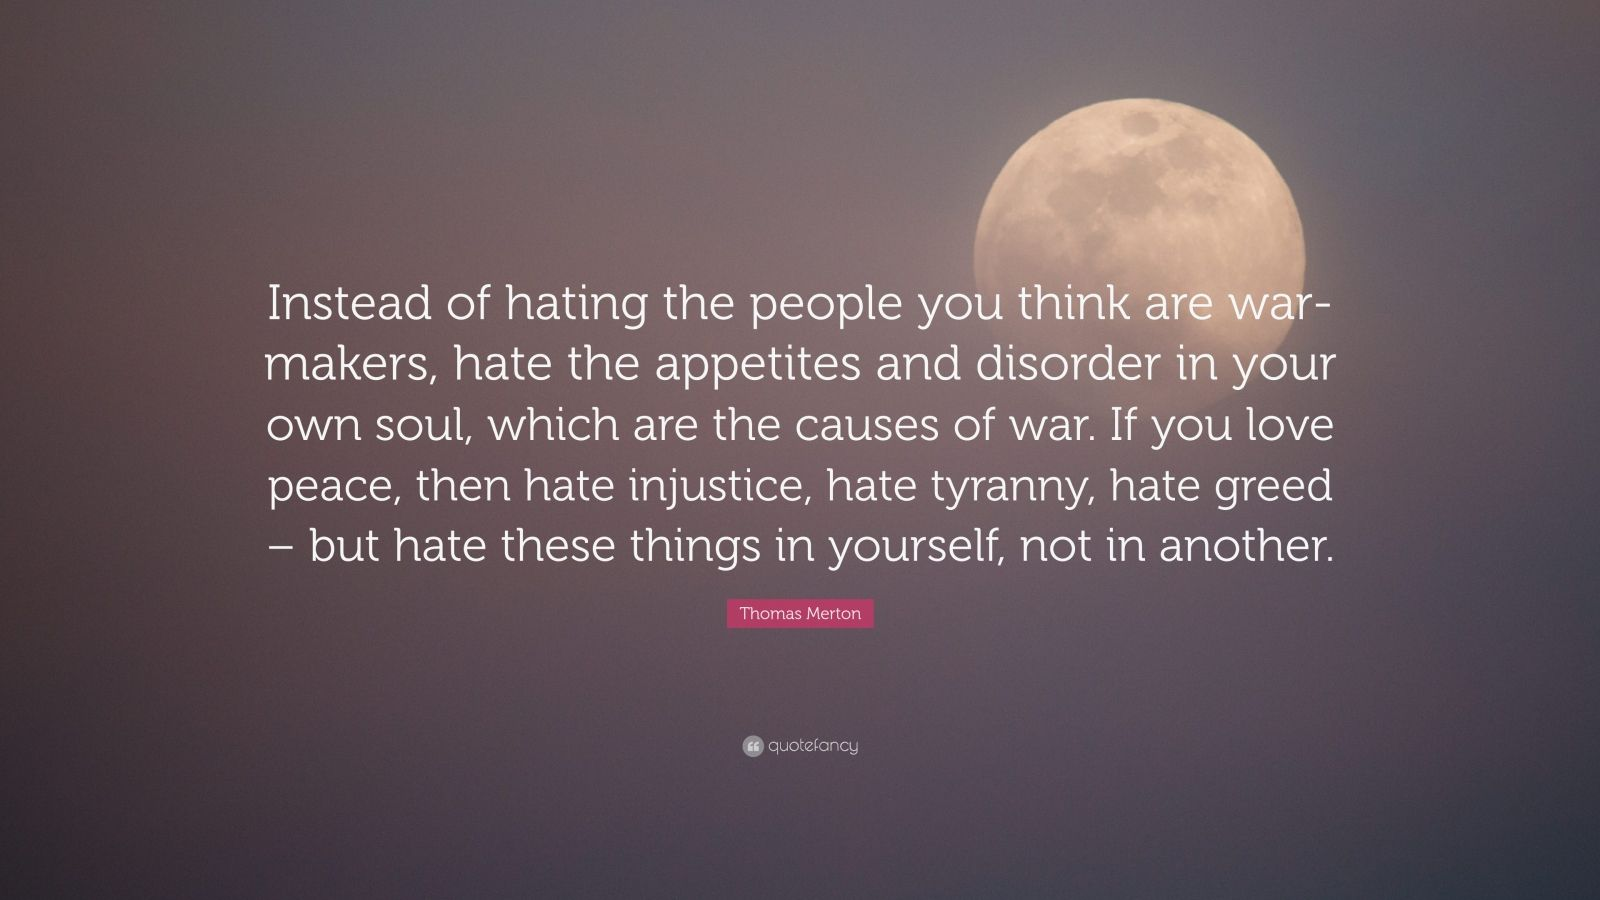 """Thomas Merton Quote: """"Instead of hating the people you think are war-makers, hate the appetites and disorder in your own soul, which are the causes of war. If you love peace, then hate injustice, hate tyranny, hate greed – but hate these things in yourself, not in another."""""""